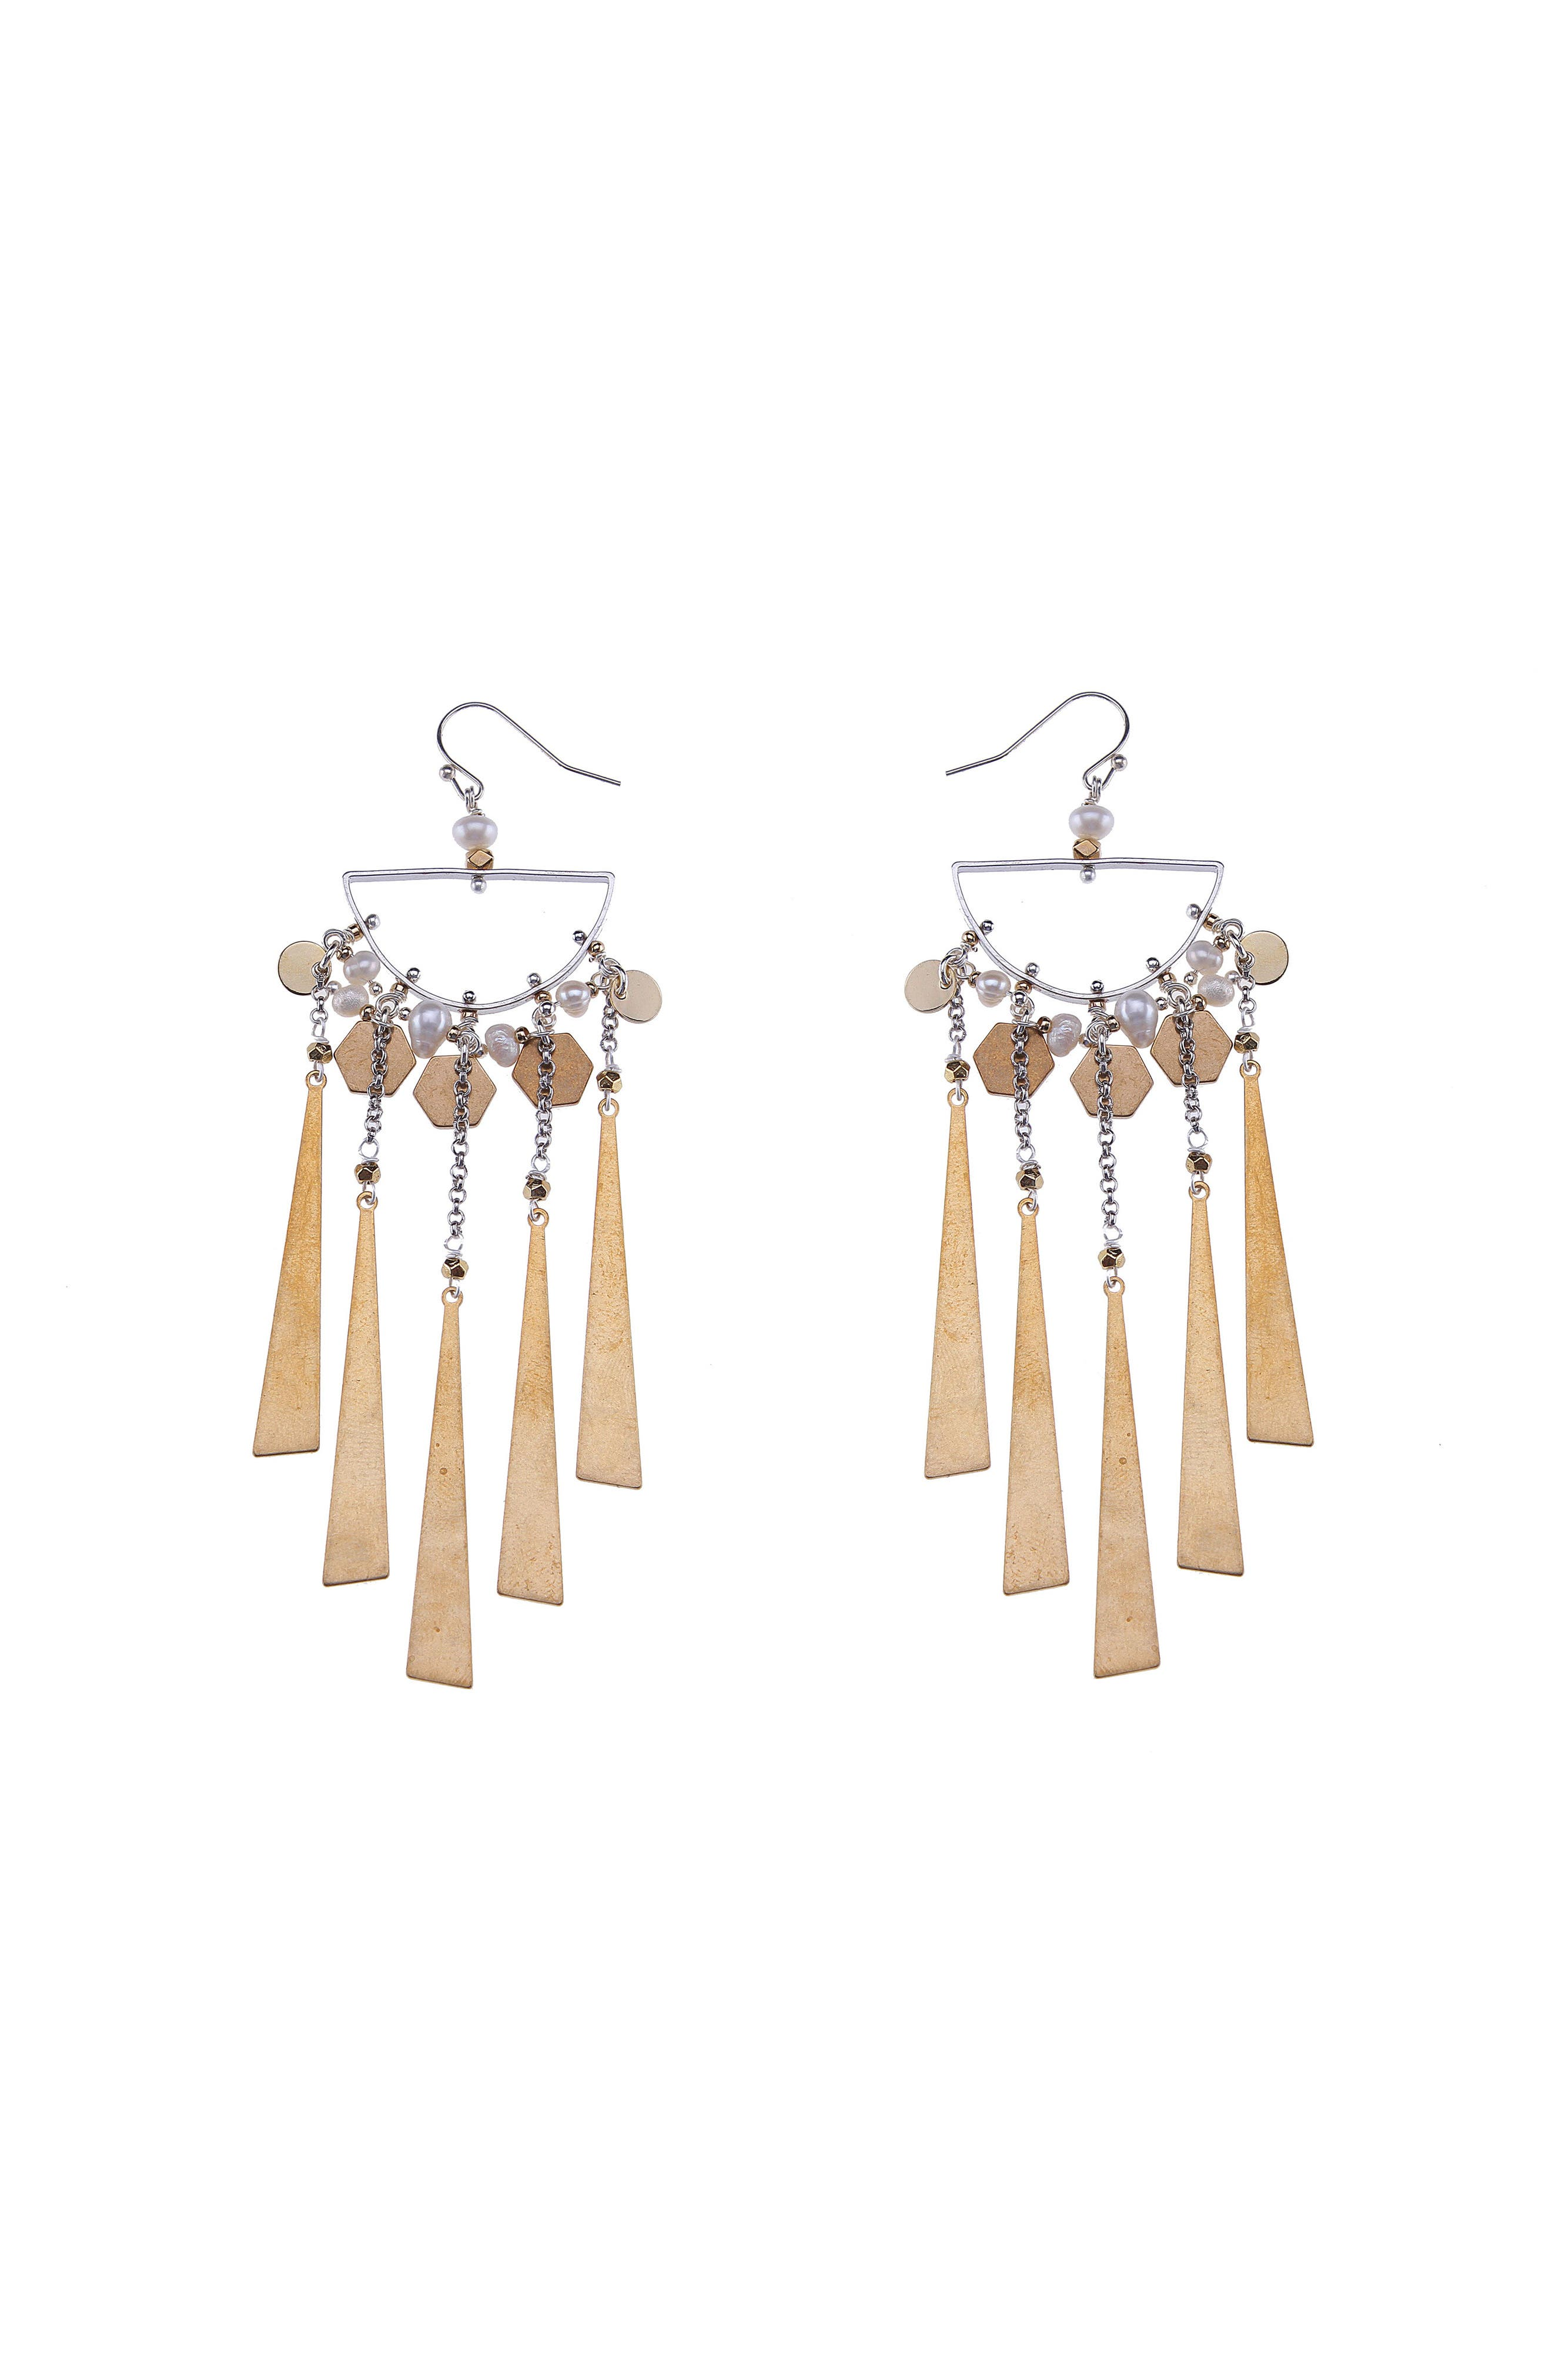 Freshwater Pearl & Metal Fringe Statement Earrings,                             Main thumbnail 1, color,                             Gold/ Silver